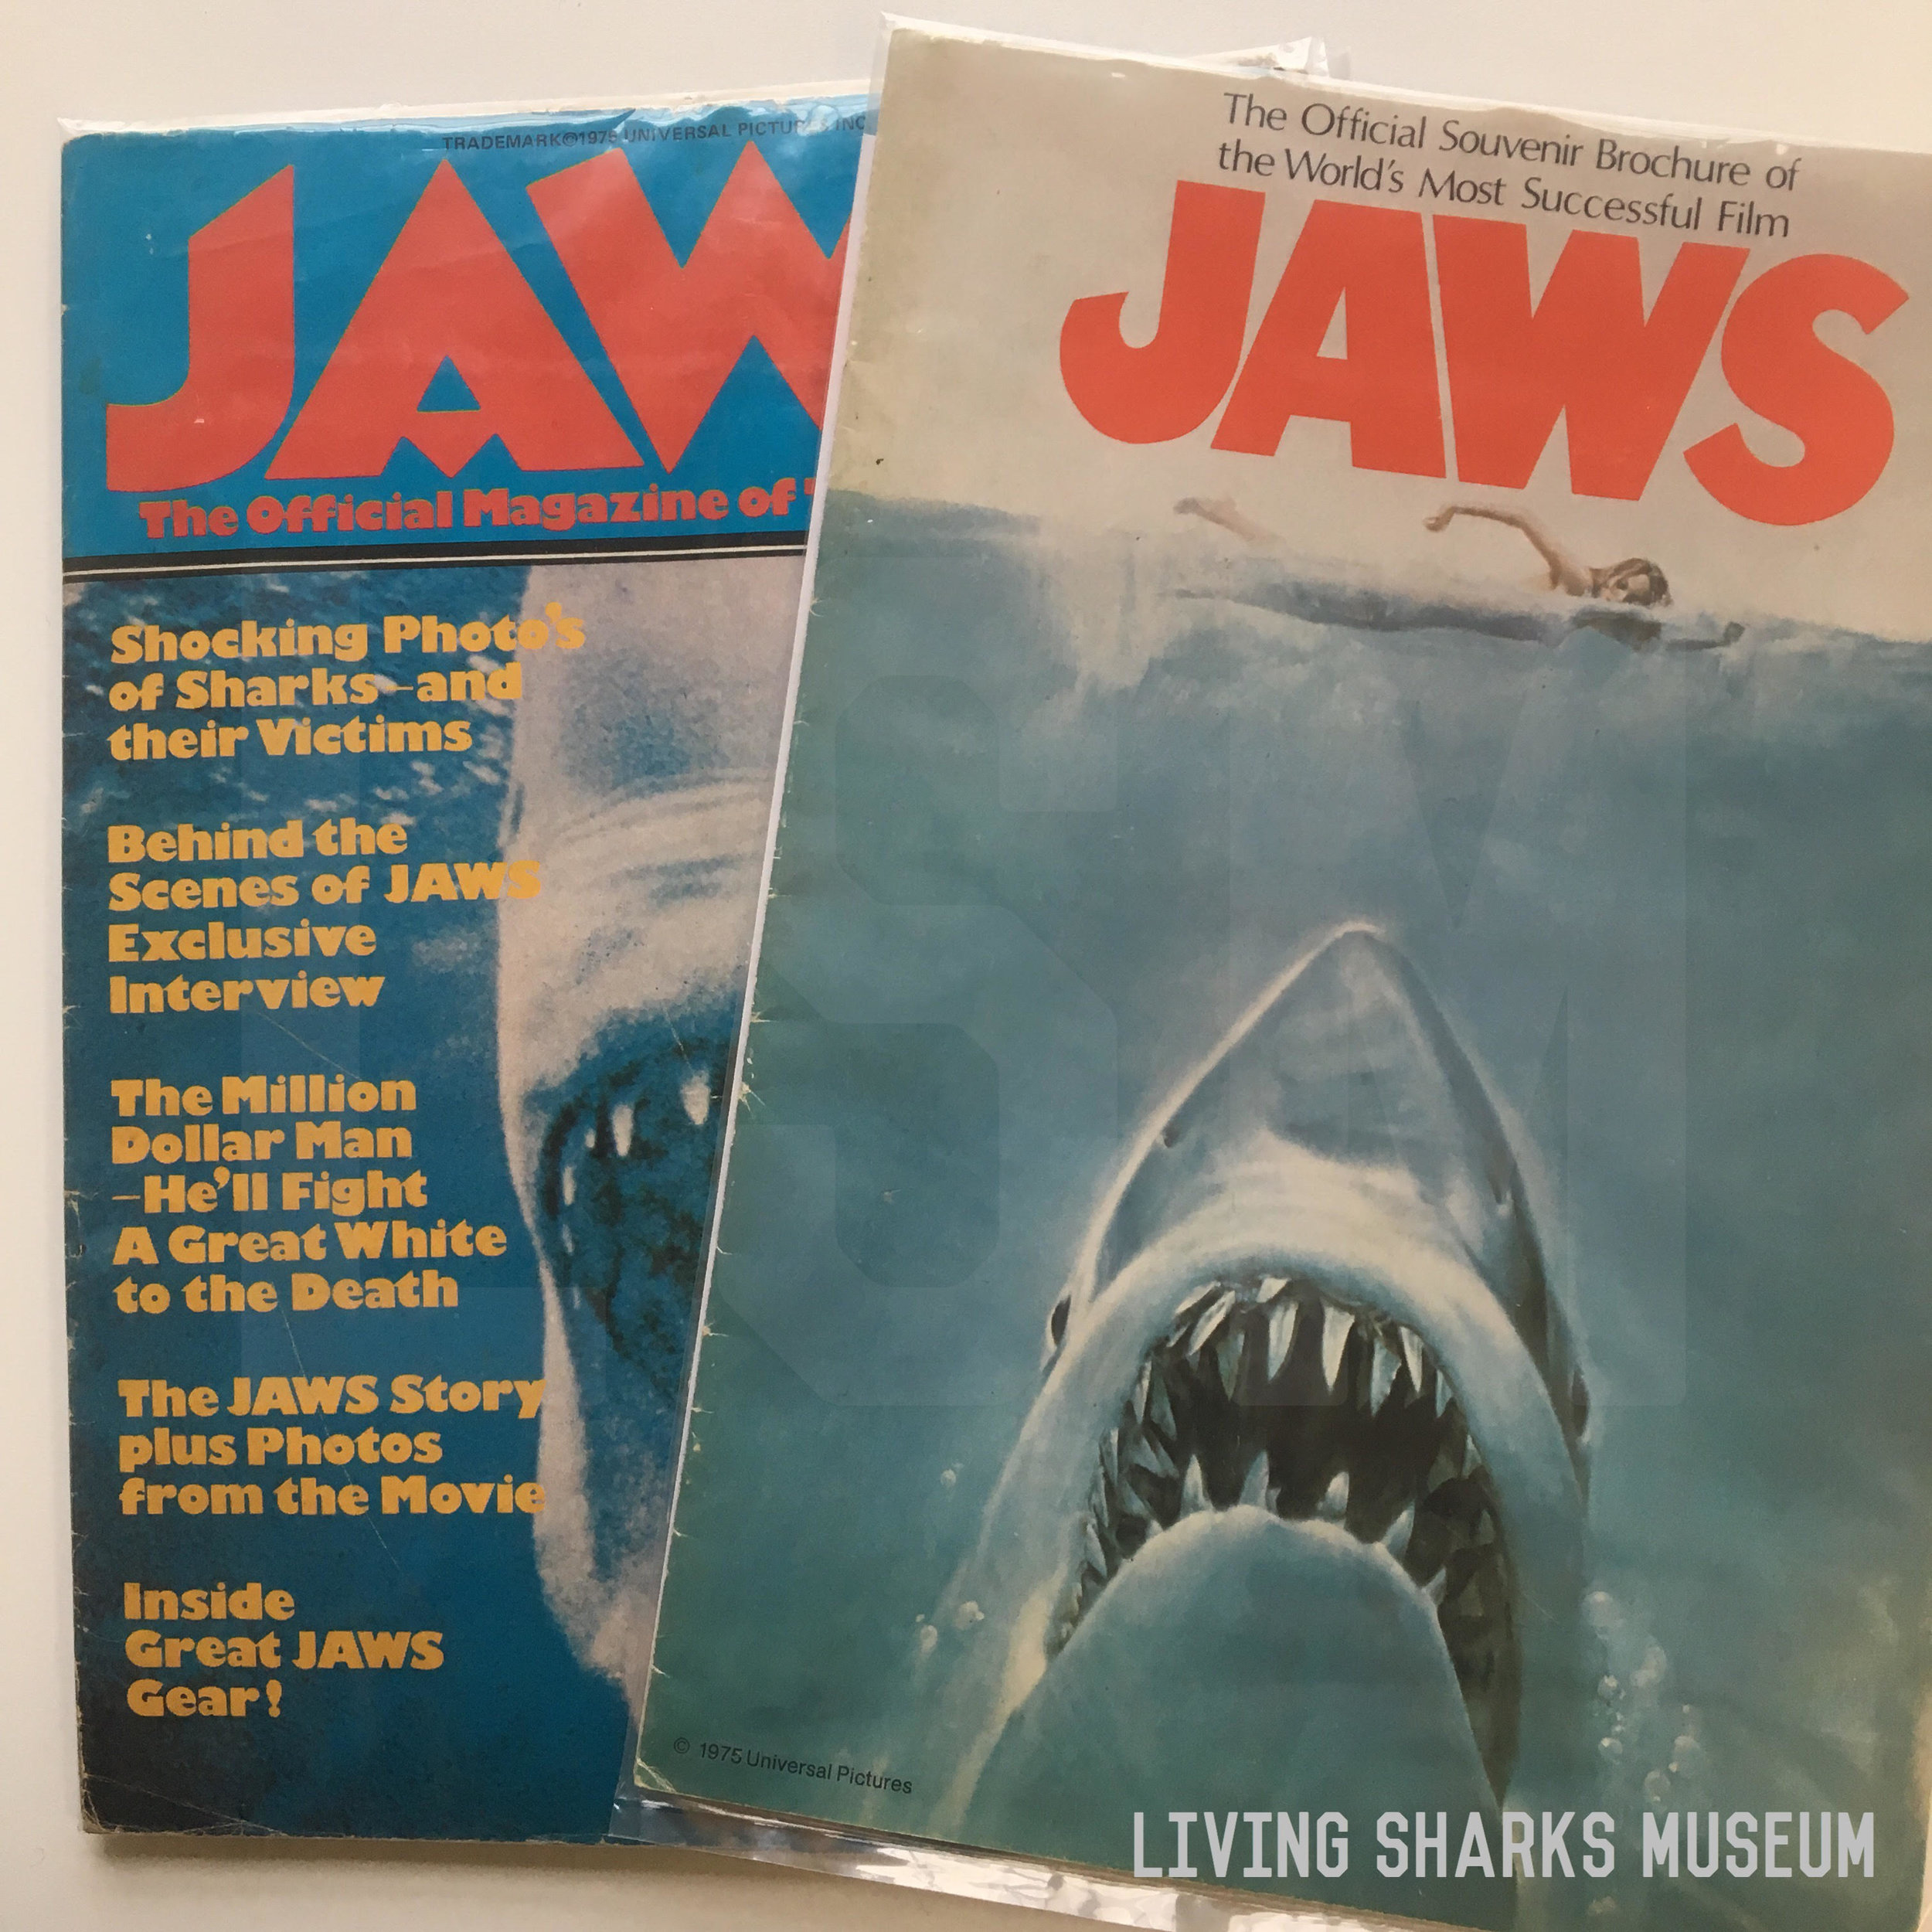 JAWS PERIODICALS - Marketing Jaws the way other major films were marketed was an afterthought. The expectation of Jaws 1975 success was low, and when it hit the ground running the studio cashed in on all kinds of merchandise and collectables.Jaws Souvenir Brochure and official movie magazines were published in many countries, though they are extremely hard to come across today!_____________________JAWS SOUVENIR BROCHURE 1975JAWS OFFICIAL MAGAZINE OF THE FILM 1975Private Collection - Keith M. Cowley